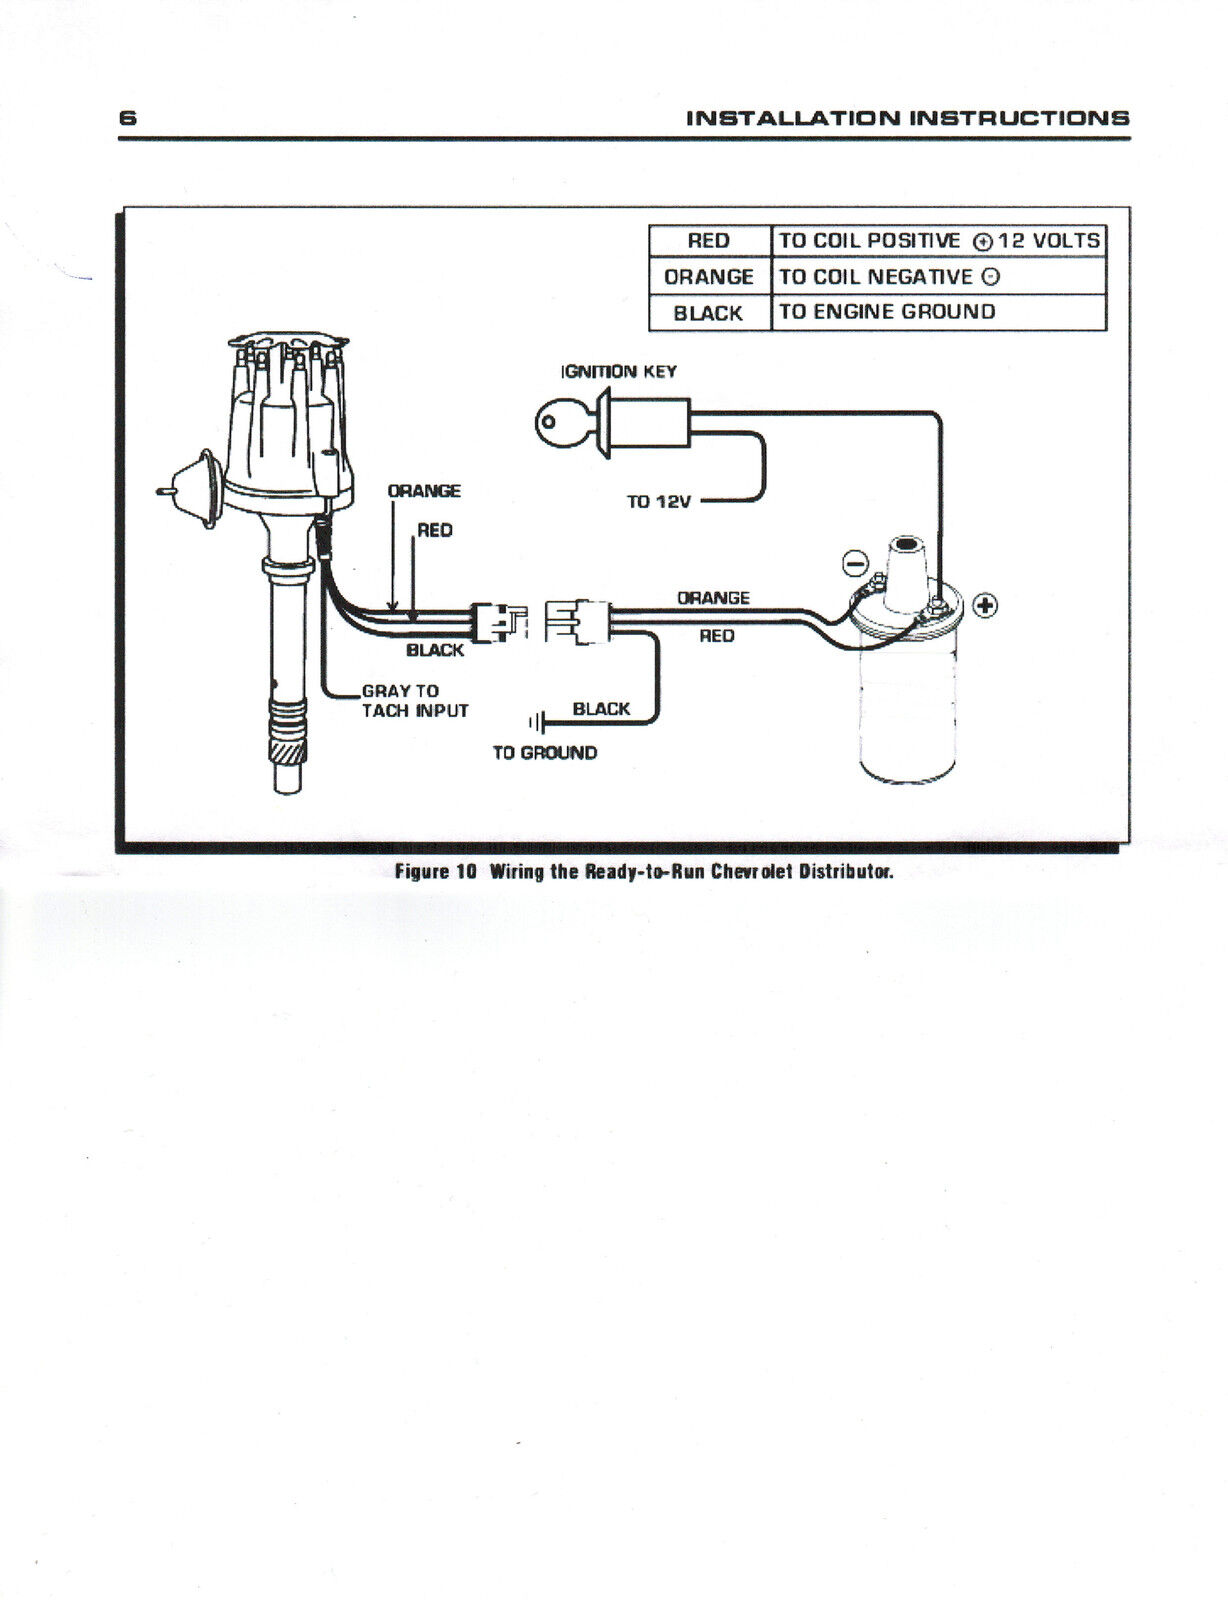 Pro Comp 8000 Distributor Wiring Diagram Reveolution Of Chevy Msd 35